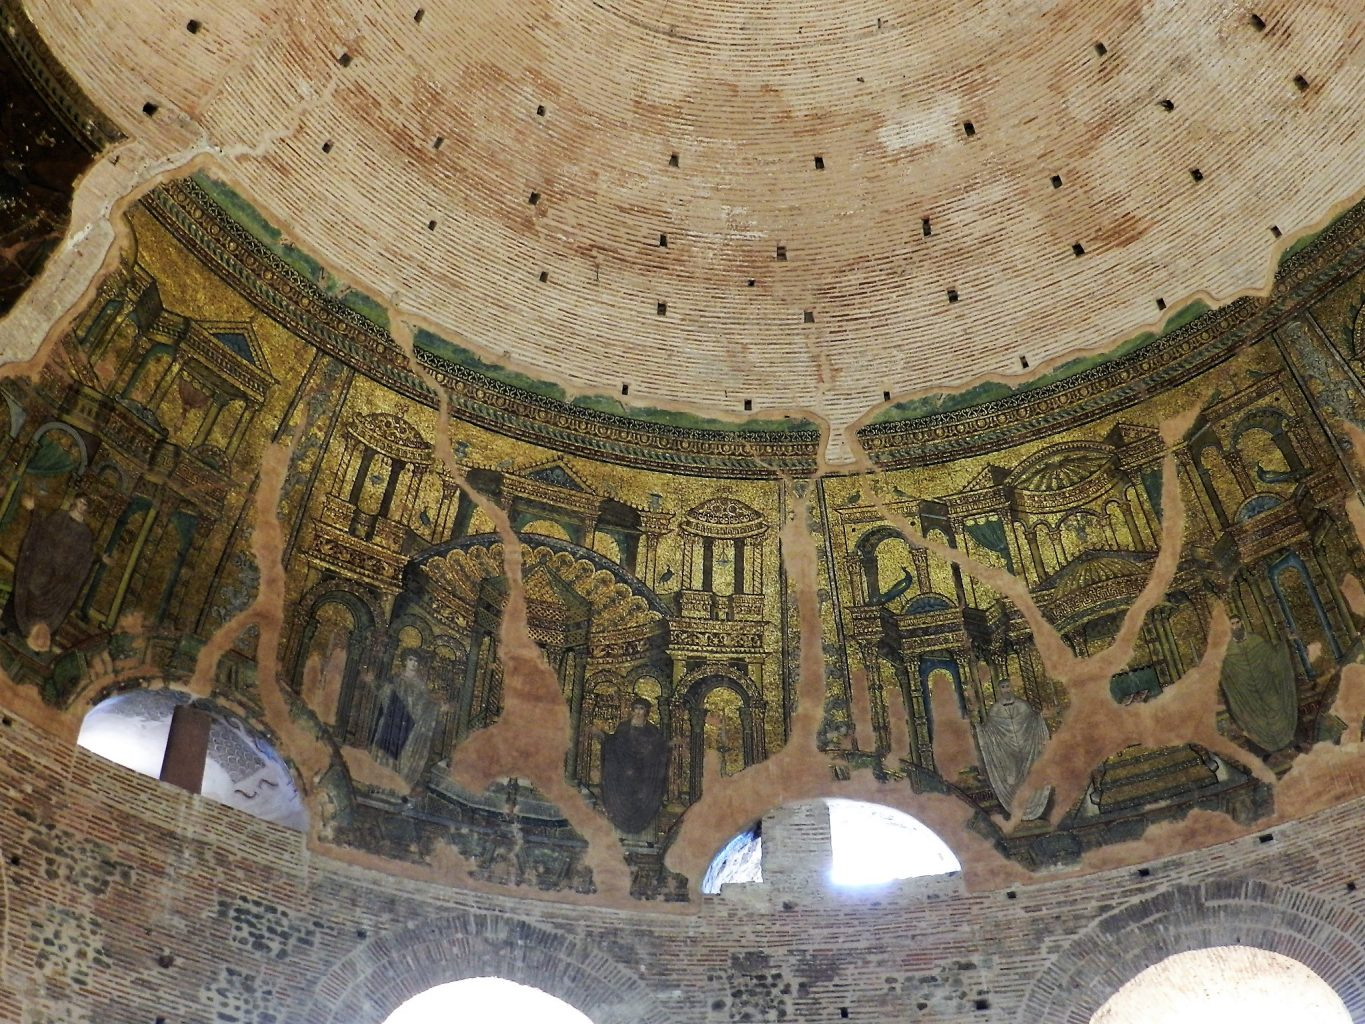 Rotunda mosaics _ dome with martyrs or sponsors and buildings.